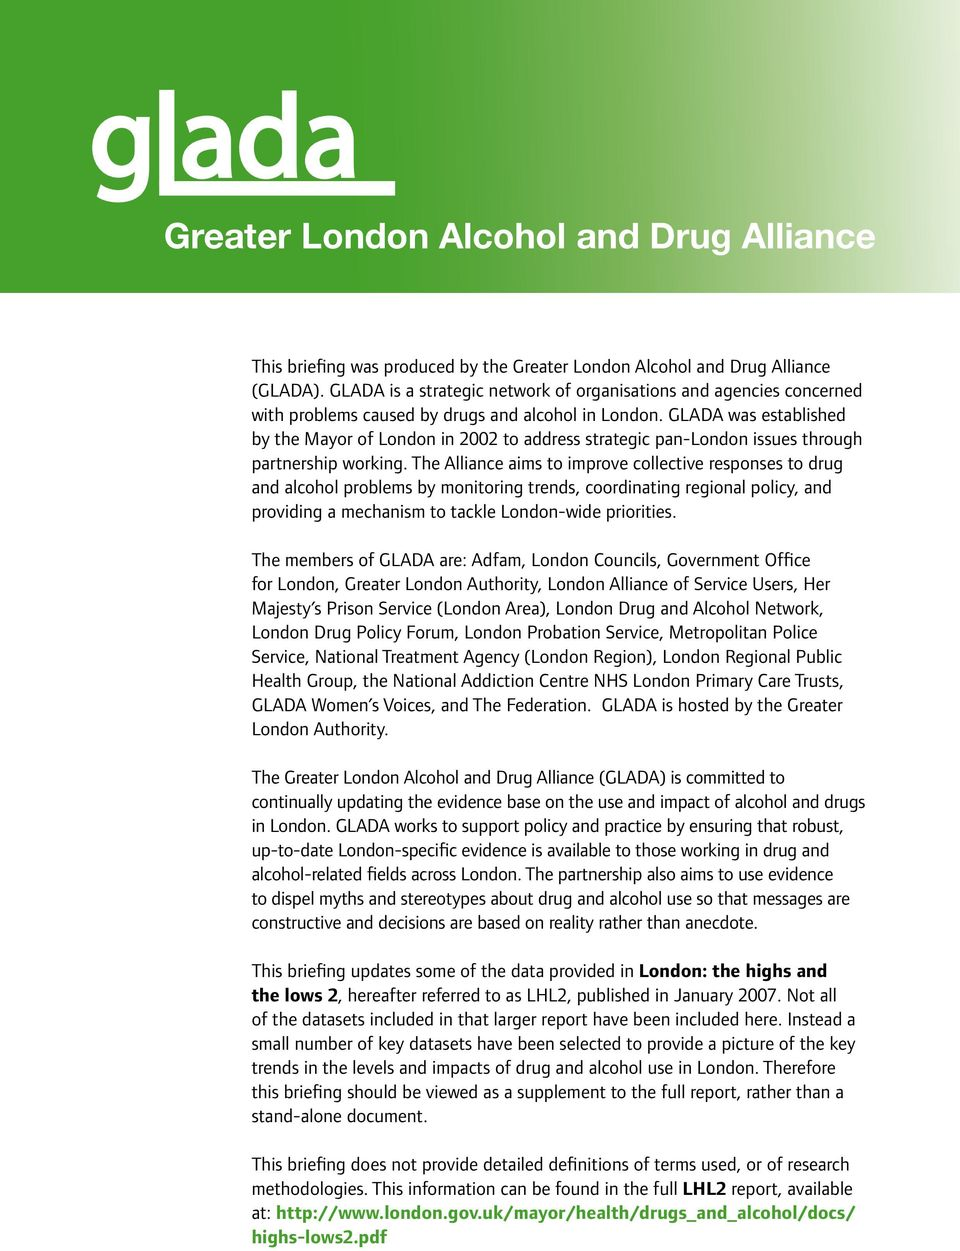 GLADA was established by the Mayor of London in 2002 to address strategic pan-london issues through partnership working.